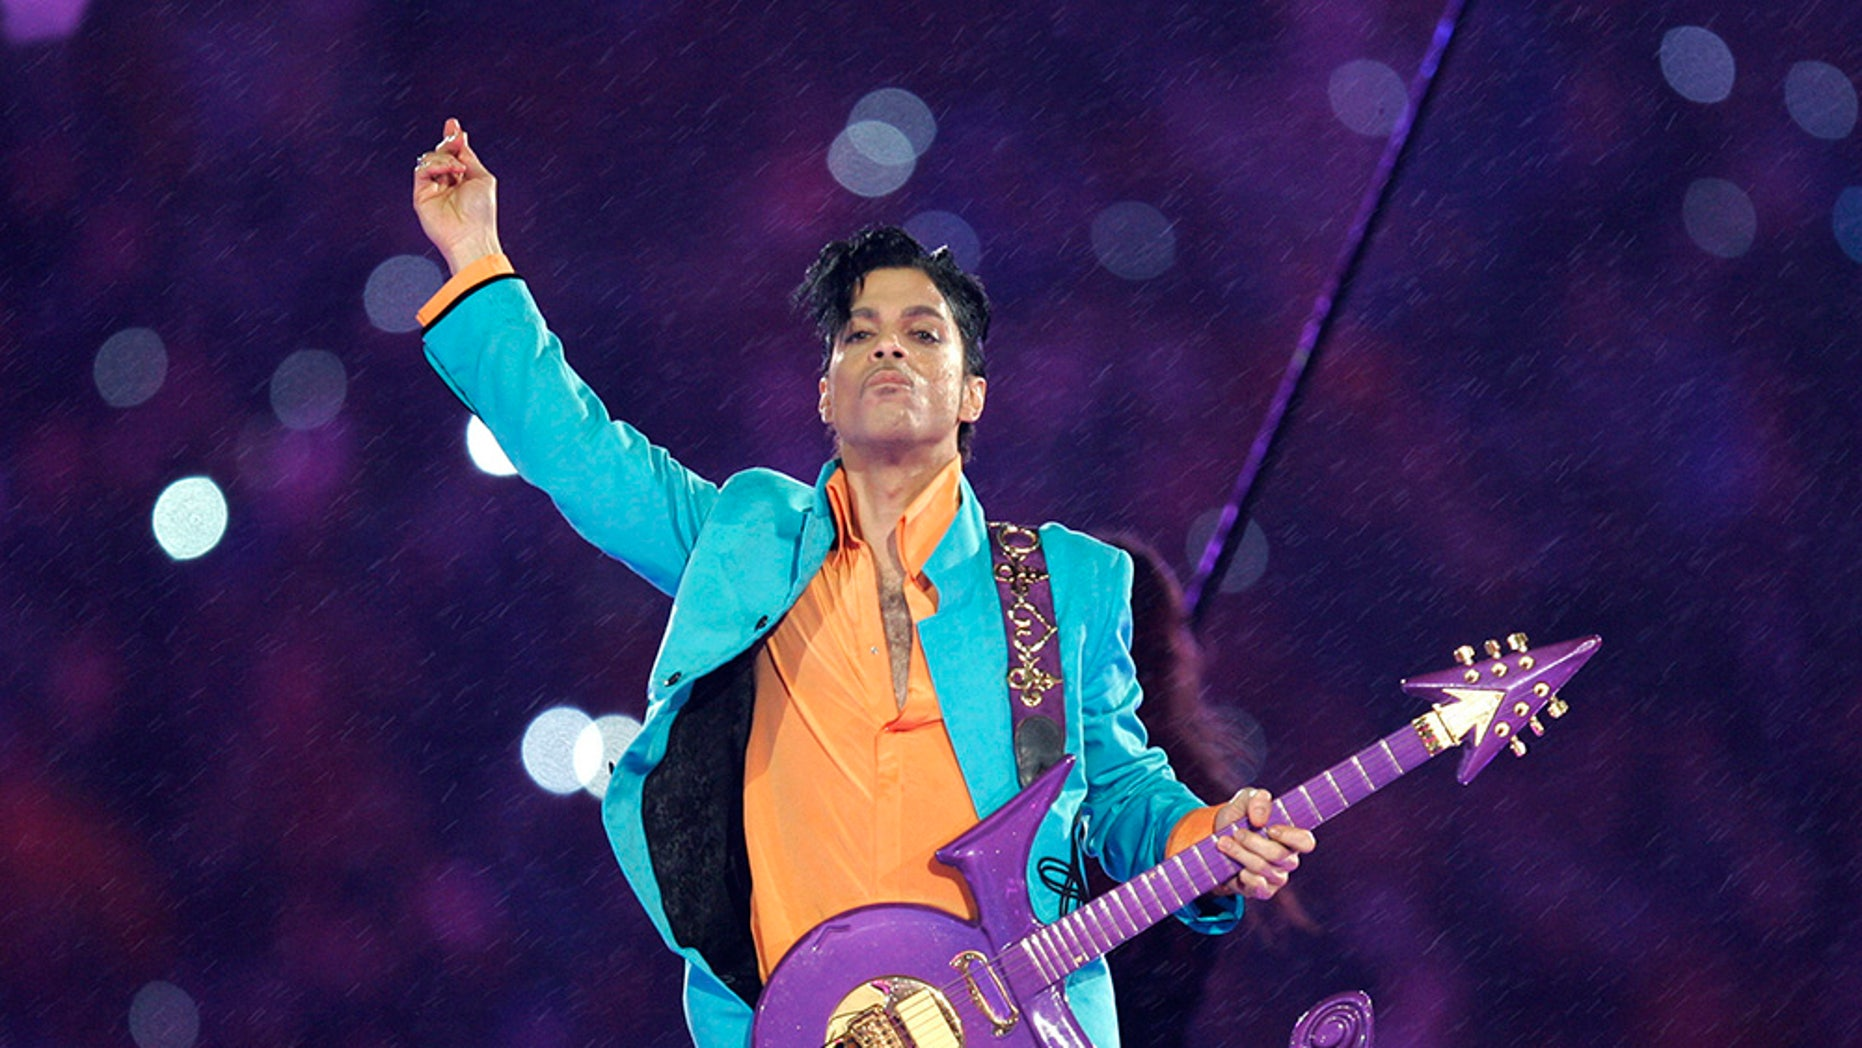 FILE - In this Feb. 4, 2007, file photo, Prince performs during the halftime show at the Super Bowl XLI football game at Dolphin Stadium in Miami. Thousands of Prince fans have signed a petition asking federal authorities to open a grand jury investigation into his 2016 death. (AP Photo/Chris O'Meara, File)